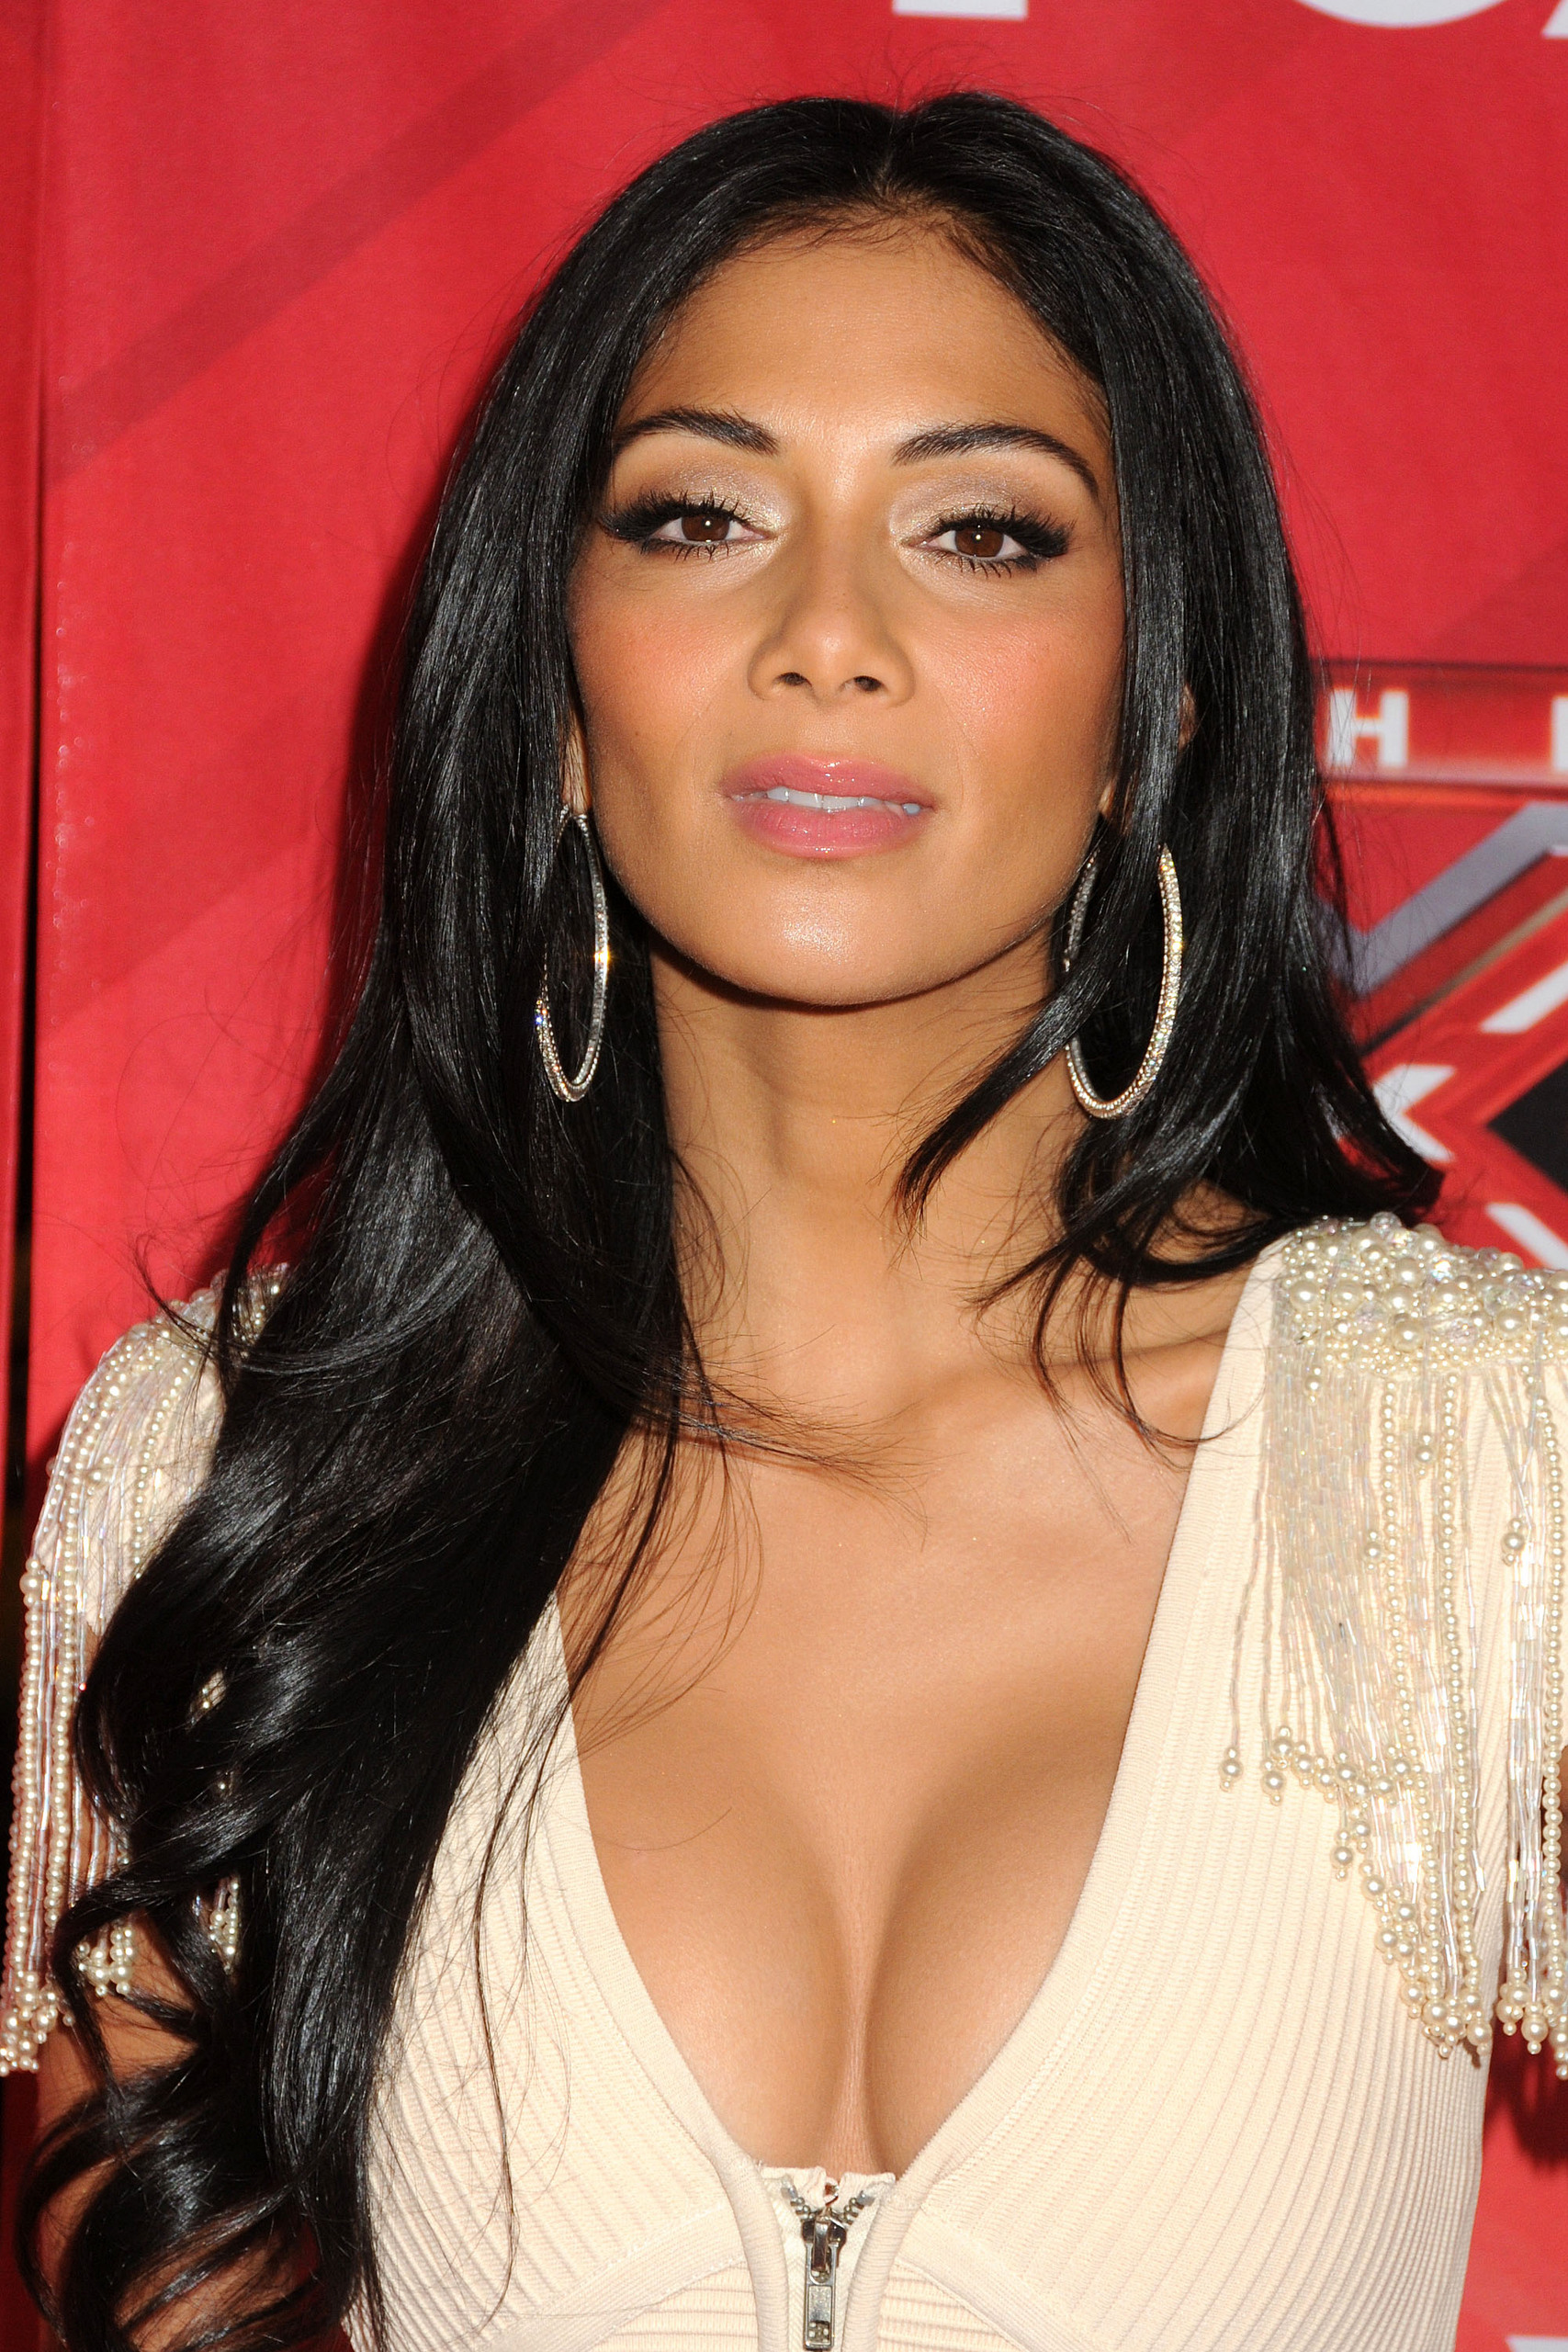 Cleavage Nicole Scherzinger naked (31 photos), Topless, Paparazzi, Instagram, braless 2015